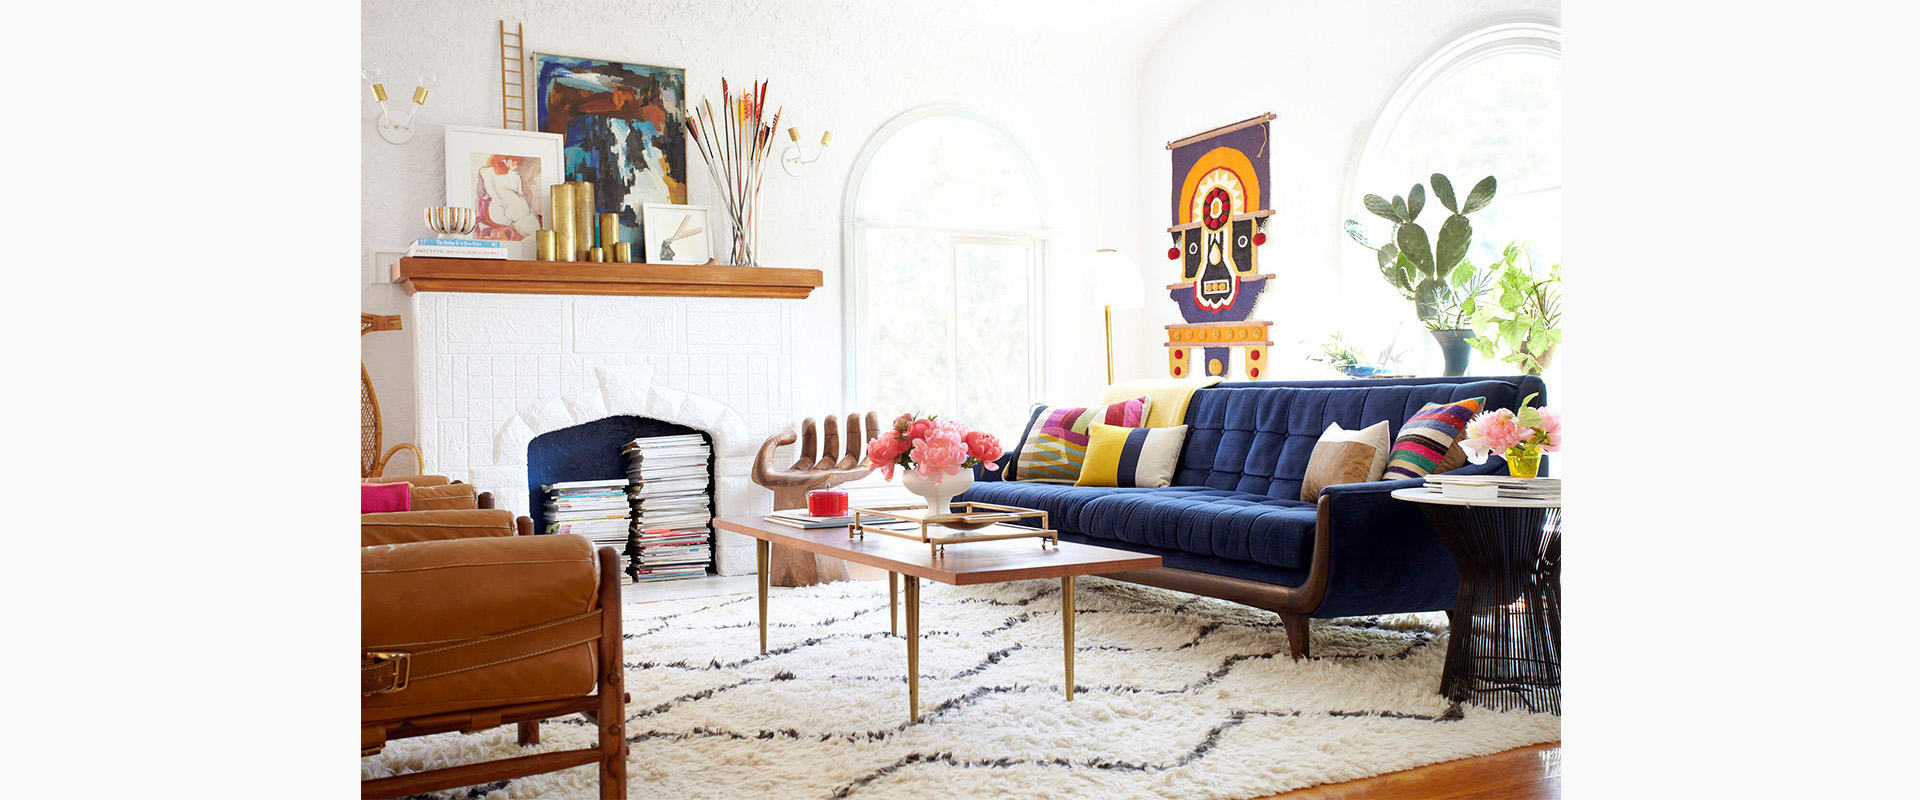 bconnected-blog-Ultimate Guide to Create a Cozy Boho-Chic Home